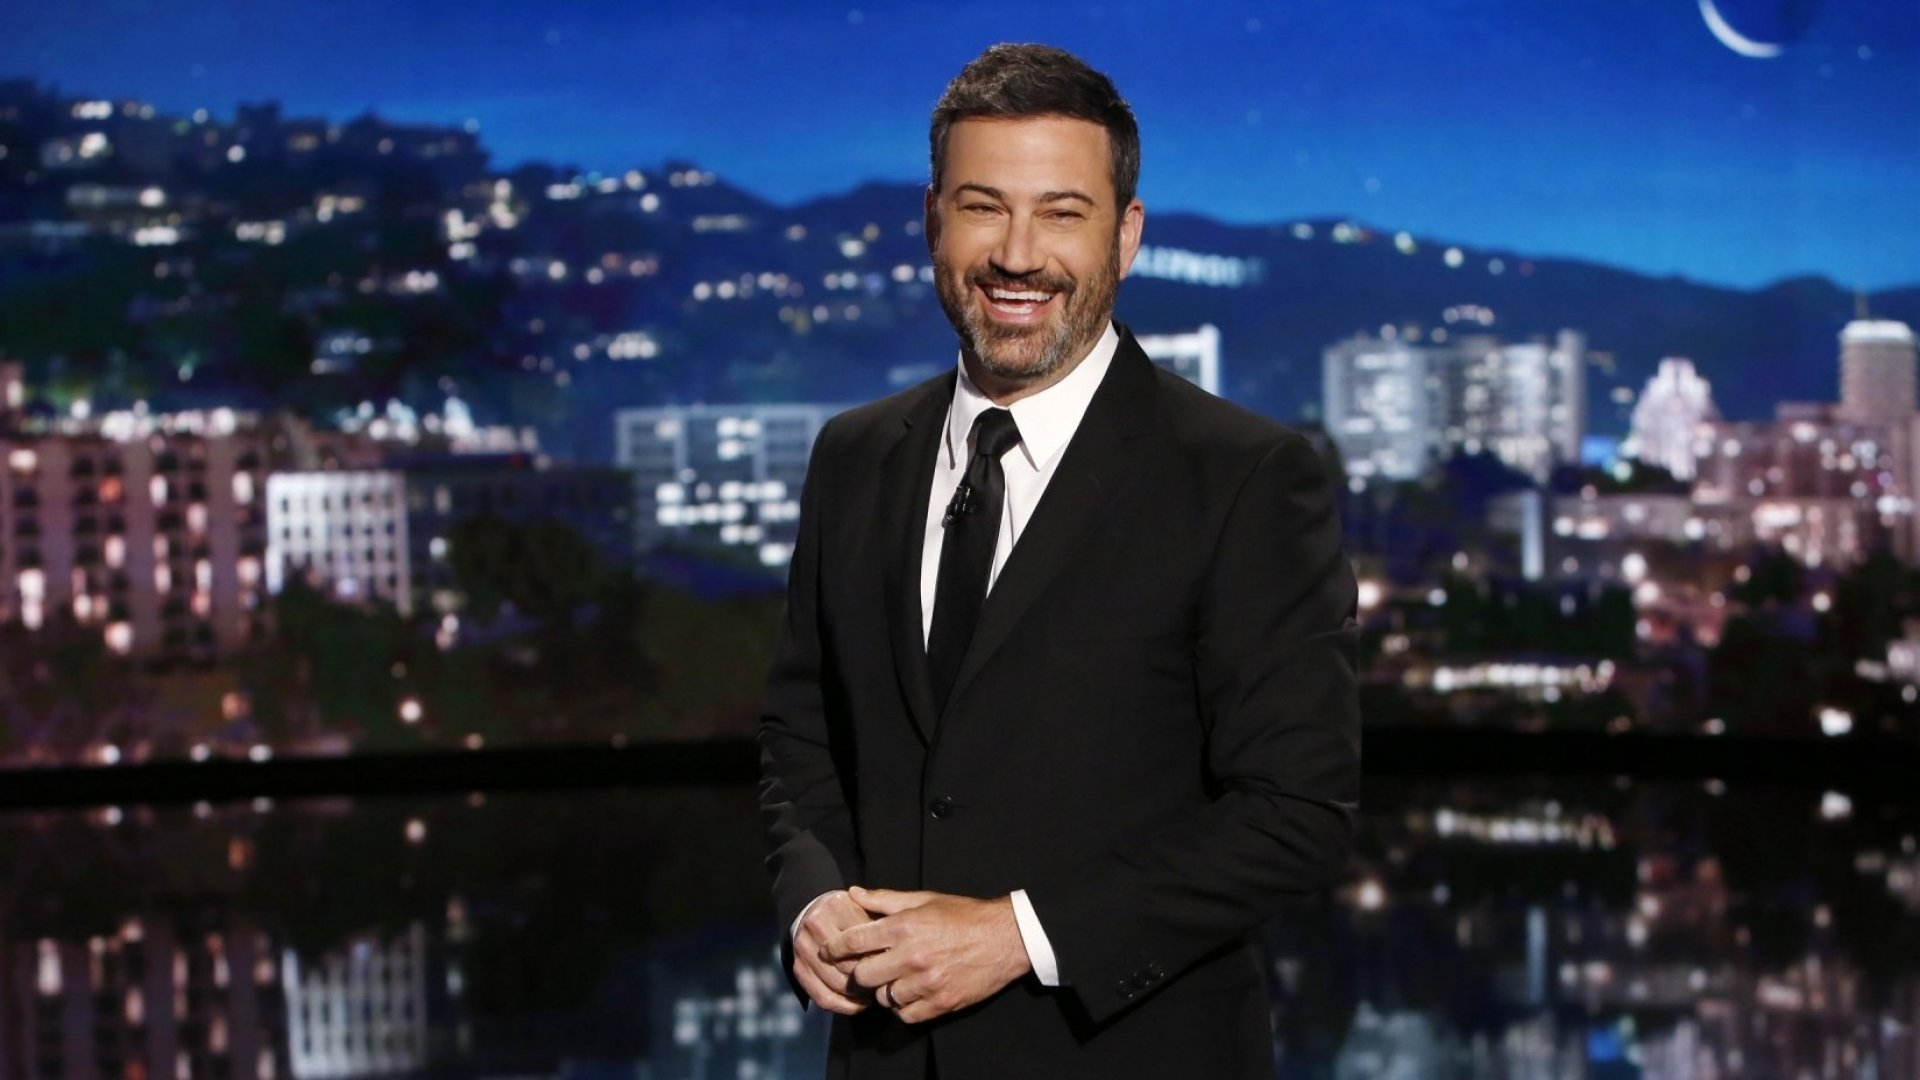 5 Things You Should Steal From Jimmy Kimmel To Instantly Improve Your Messaging